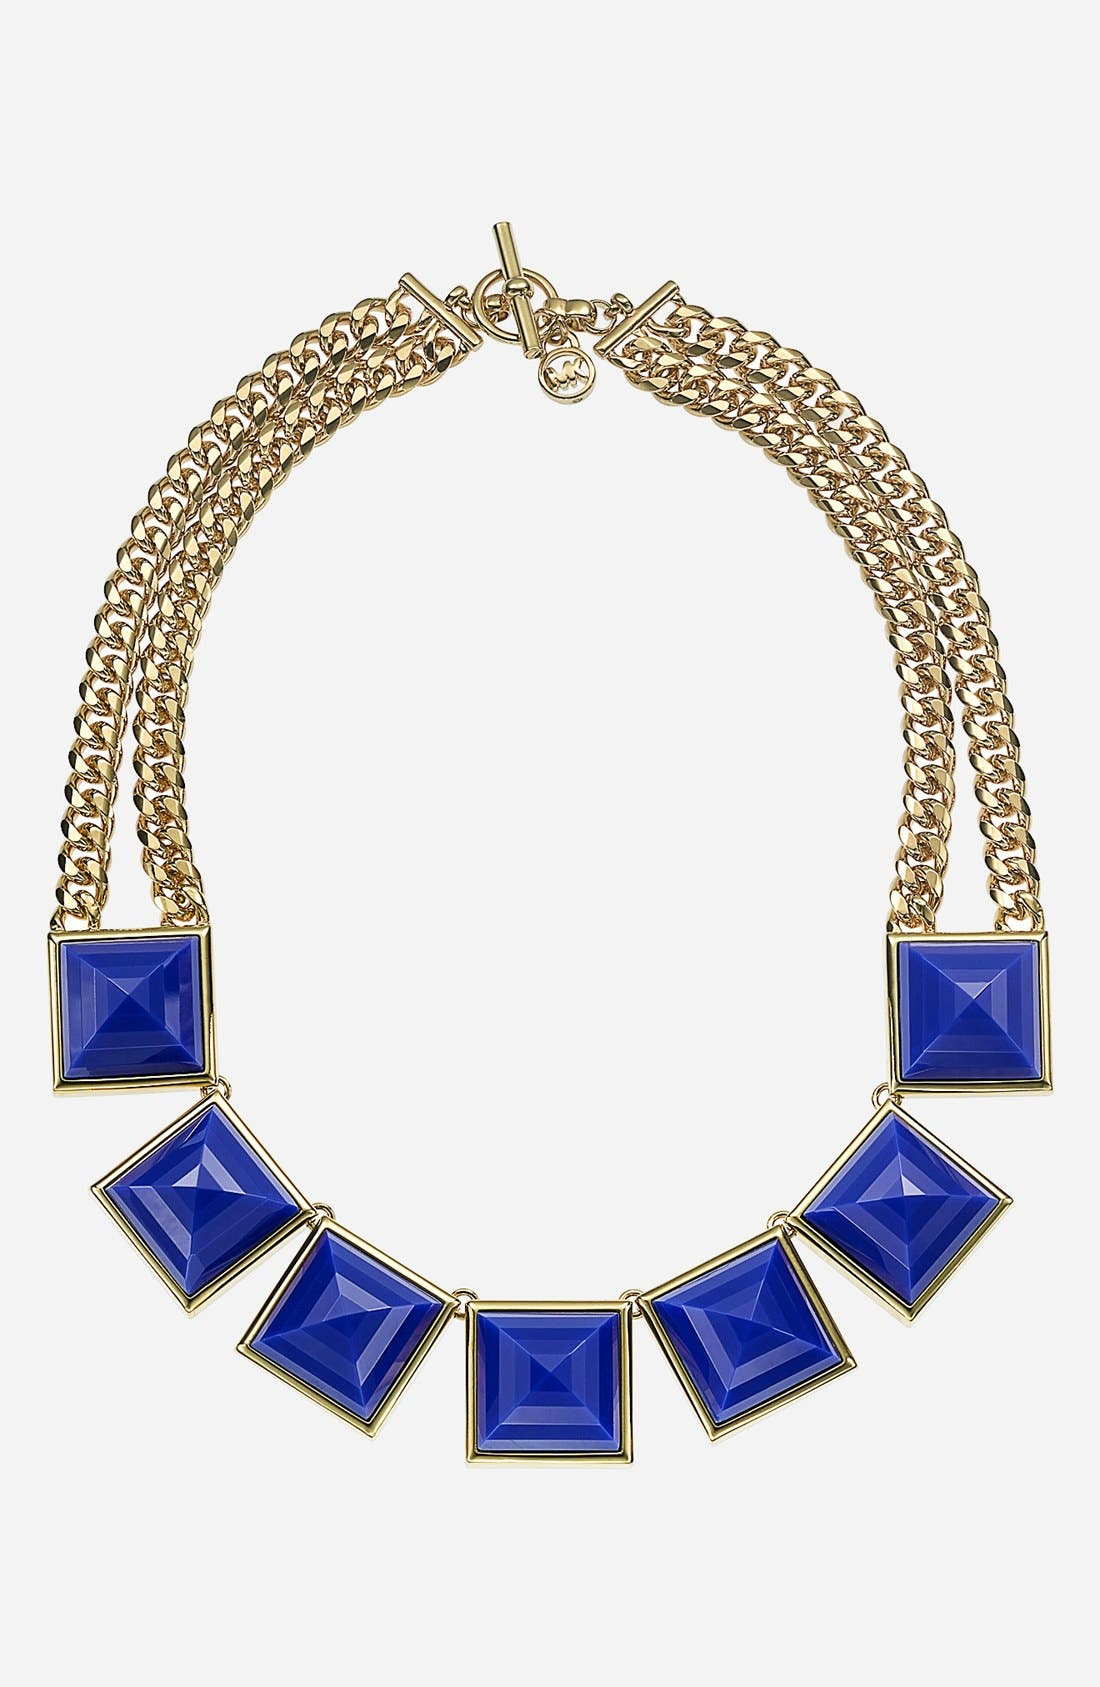 Main Image - Michael Kors 'Glam Rock' Collar Necklace